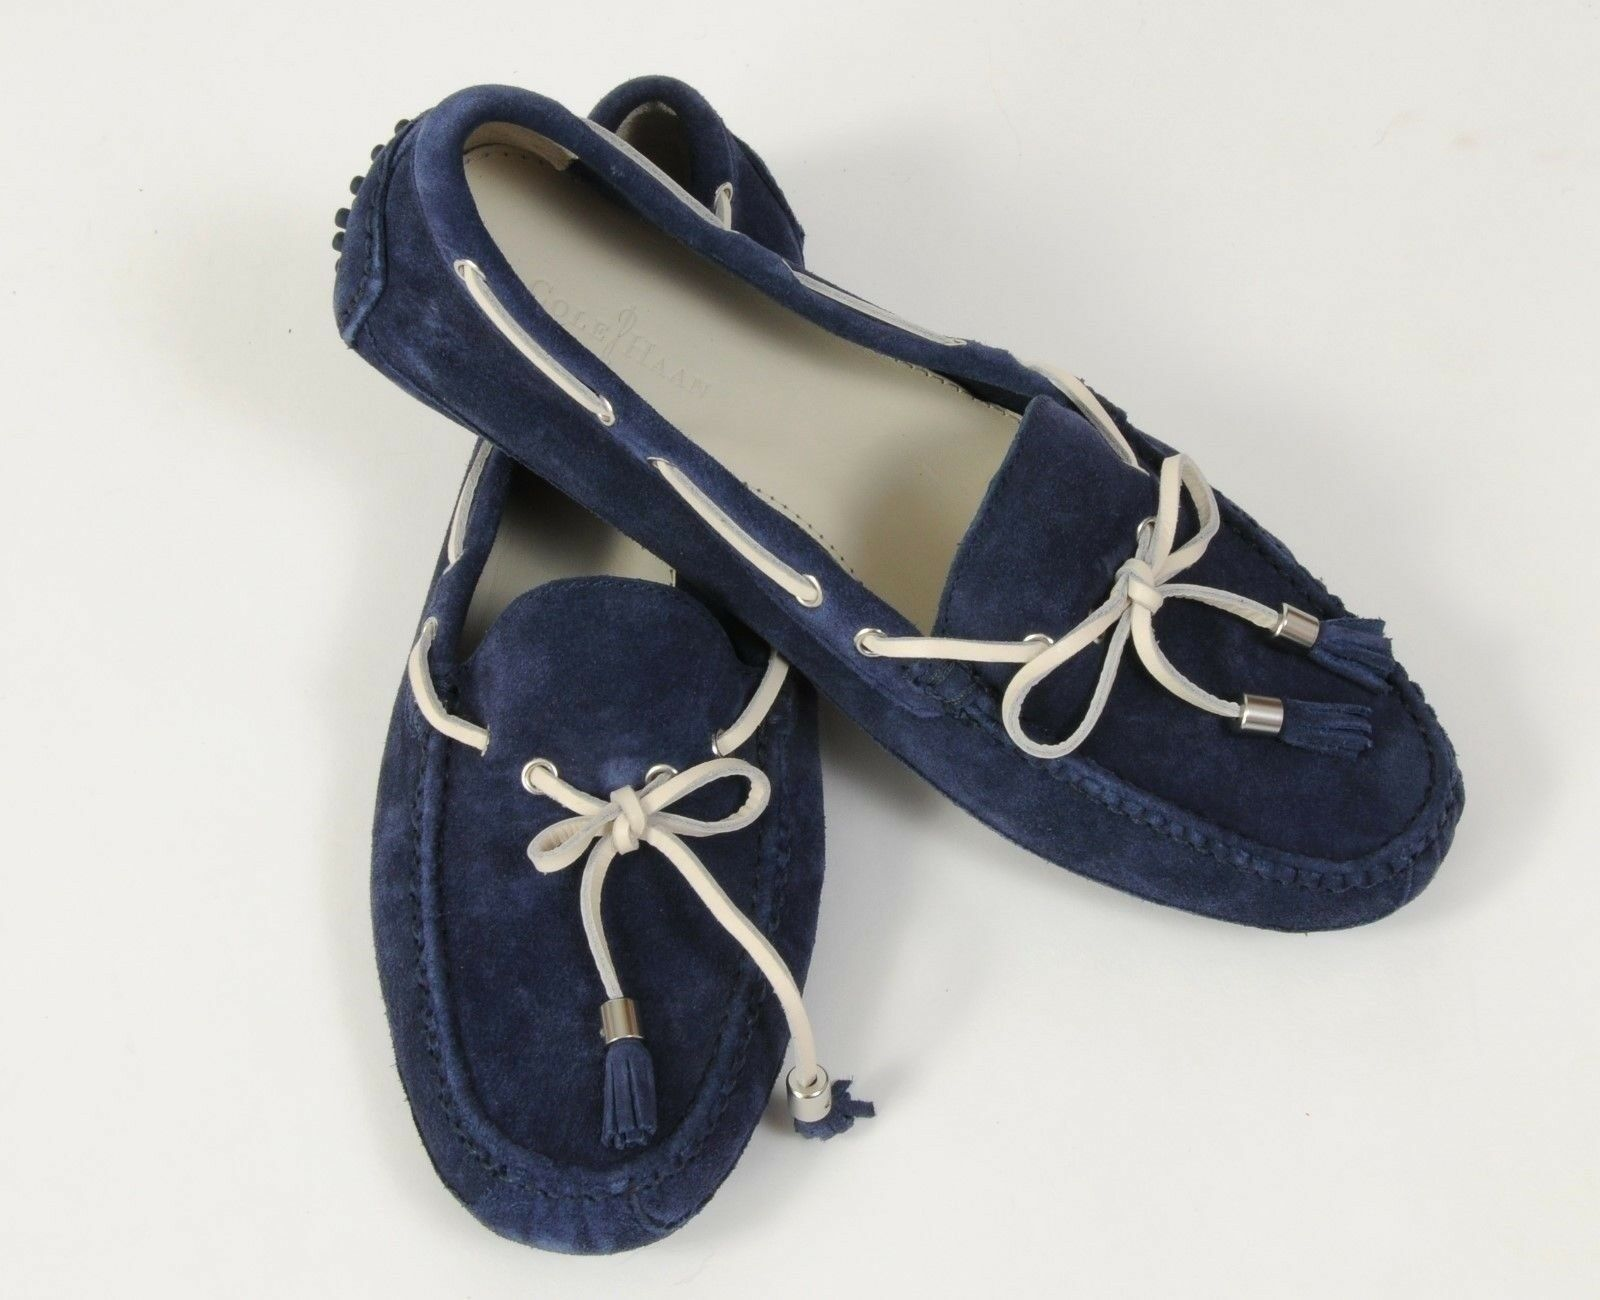 New Cole Haan Schuhes Grant Driving Loafers Boat Größe 8.5 Blau Suede Moccasins